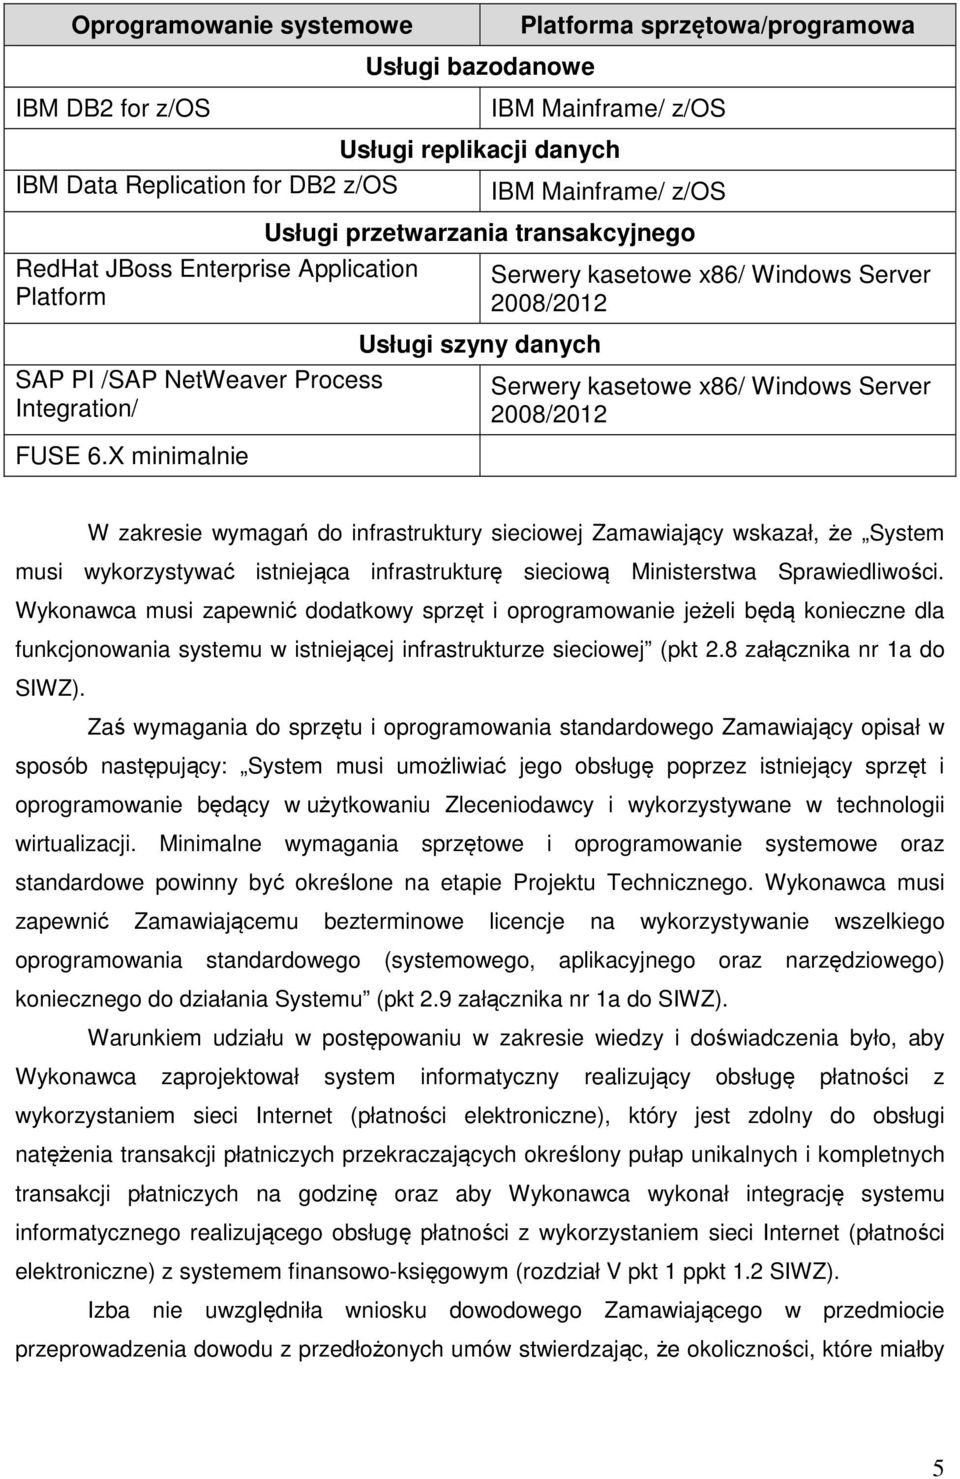 X minimalnie Usługi przetwarzania transakcyjnego Usługi szyny danych Serwery kasetowe x86/ Windows Server 2008/2012 Serwery kasetowe x86/ Windows Server 2008/2012 W zakresie wymagań do infrastruktury